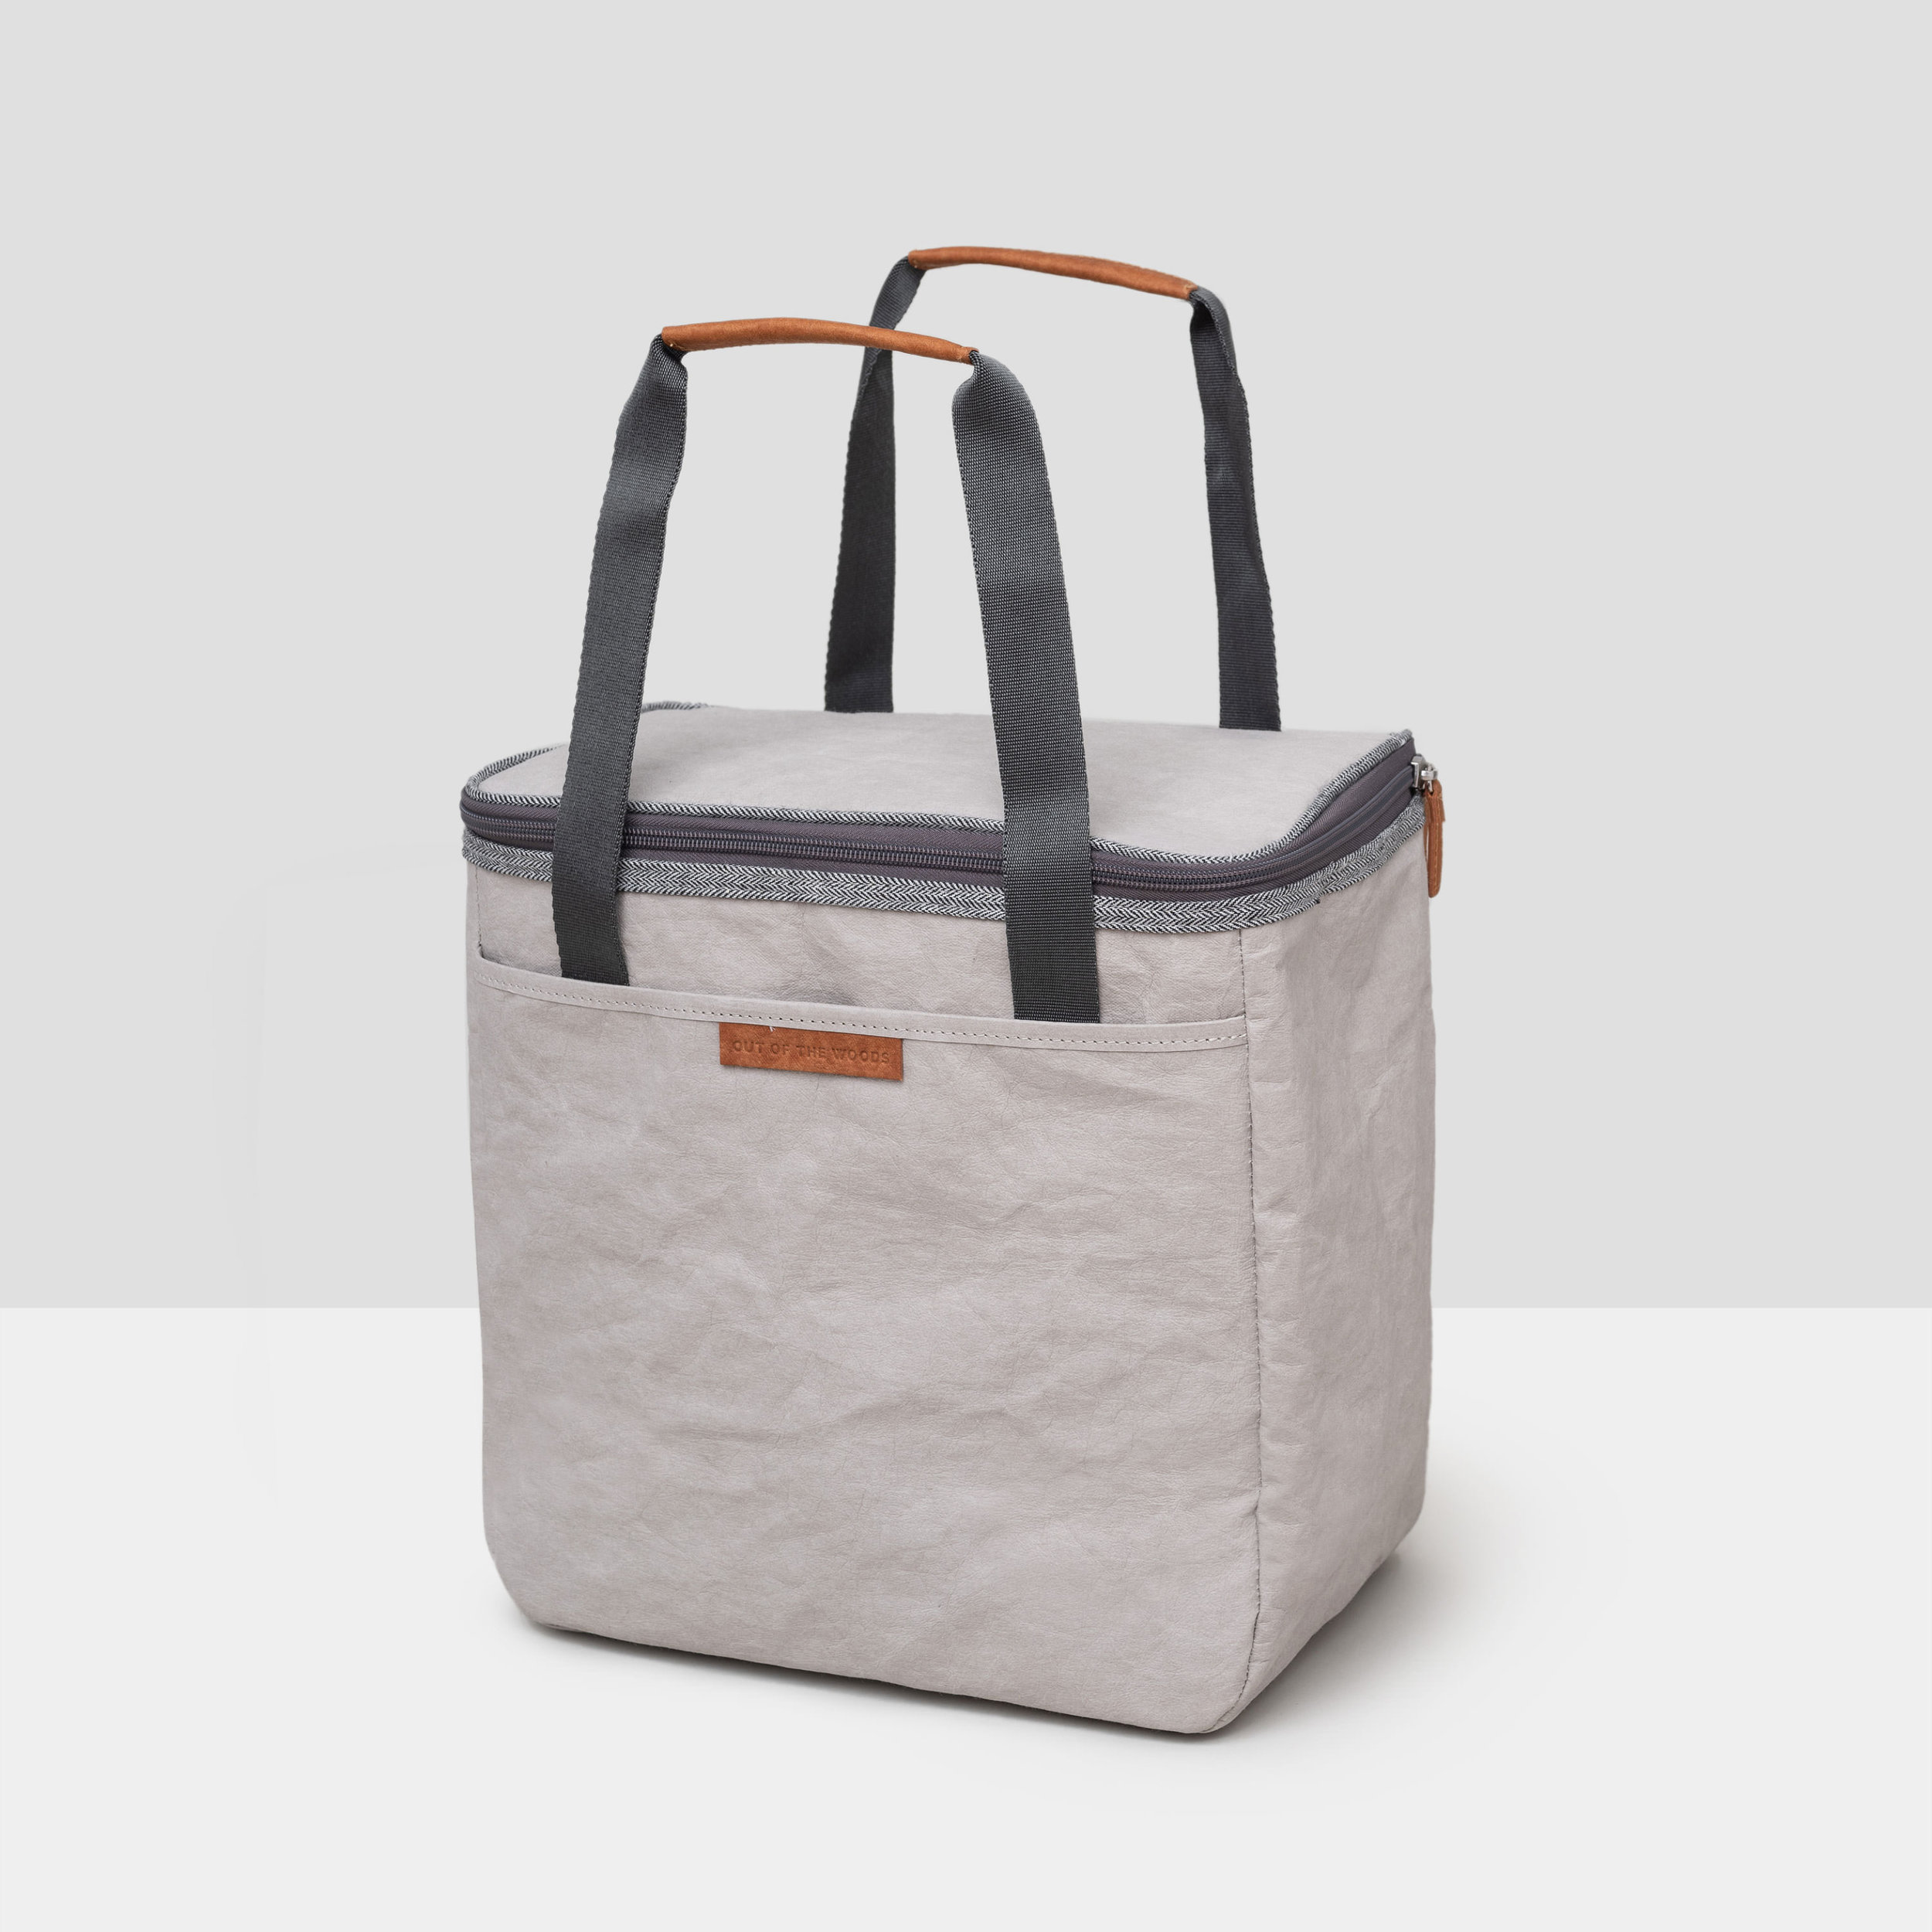 Dolphin Cooler in light gray Supernatural Paper with dark gray and herringbone trims.